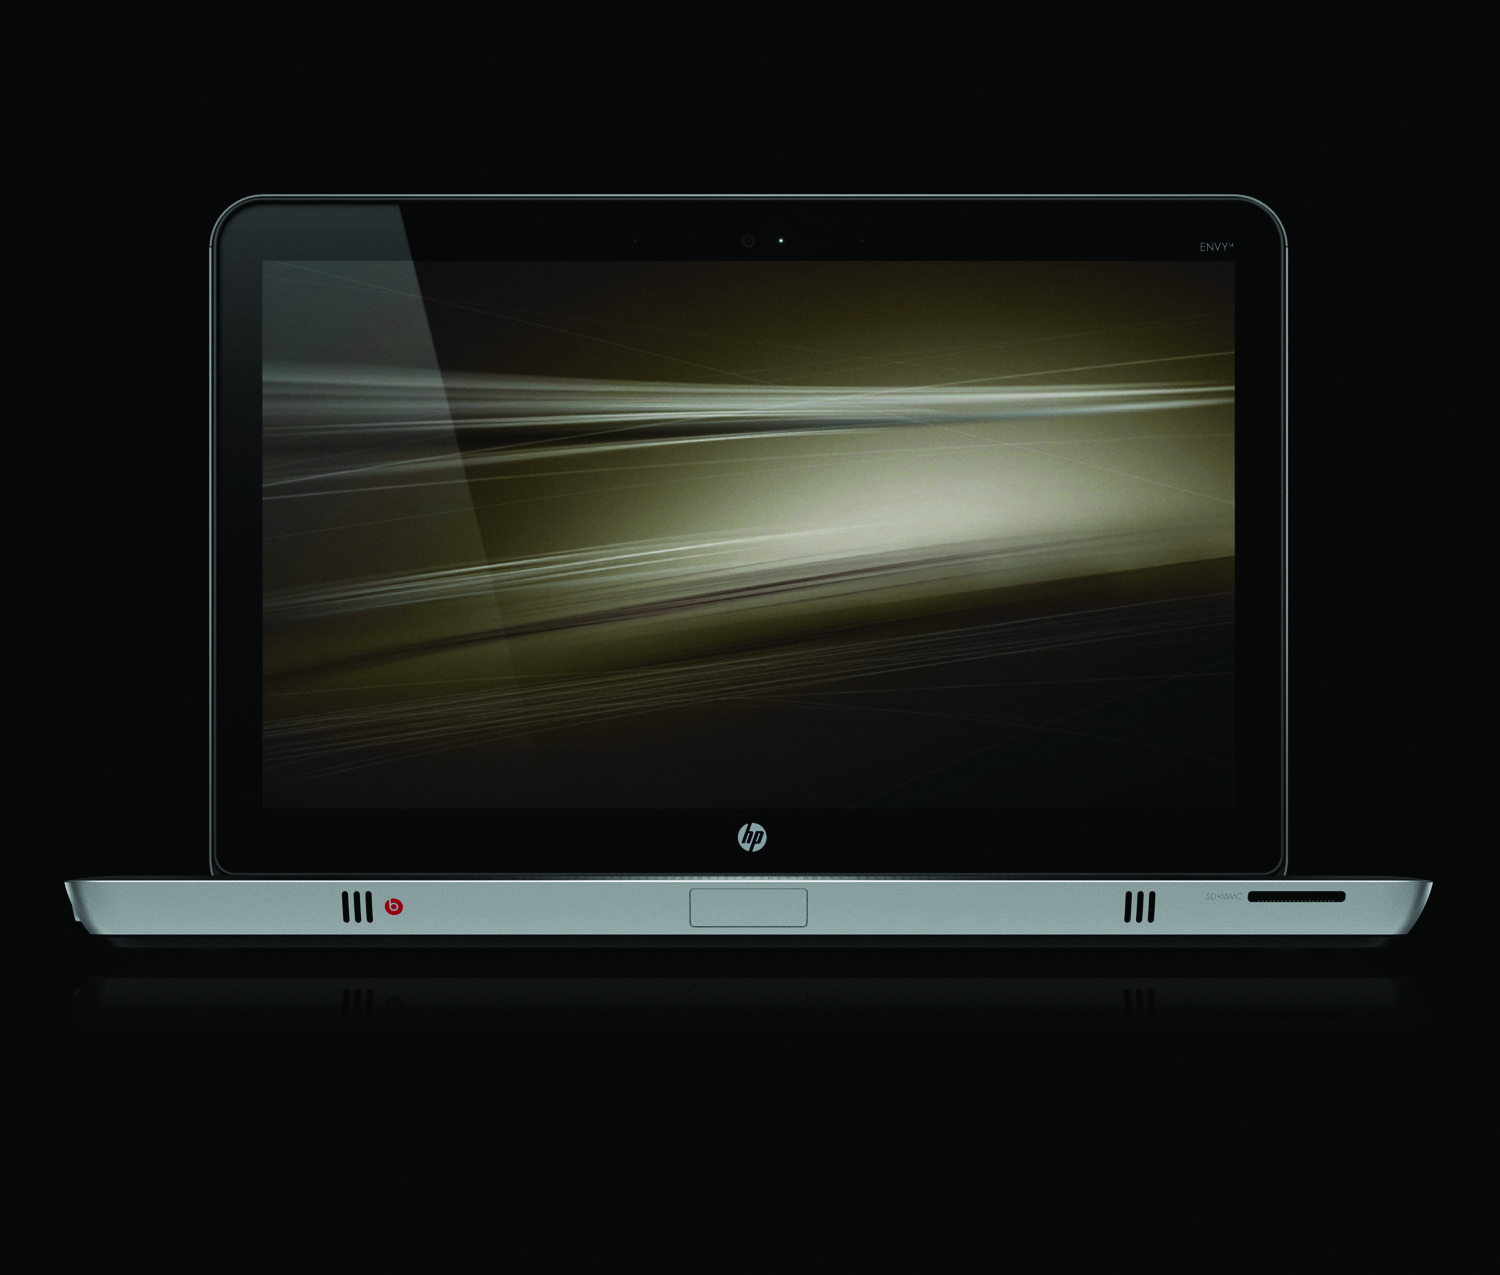 HP Envy 14, front open profile on black